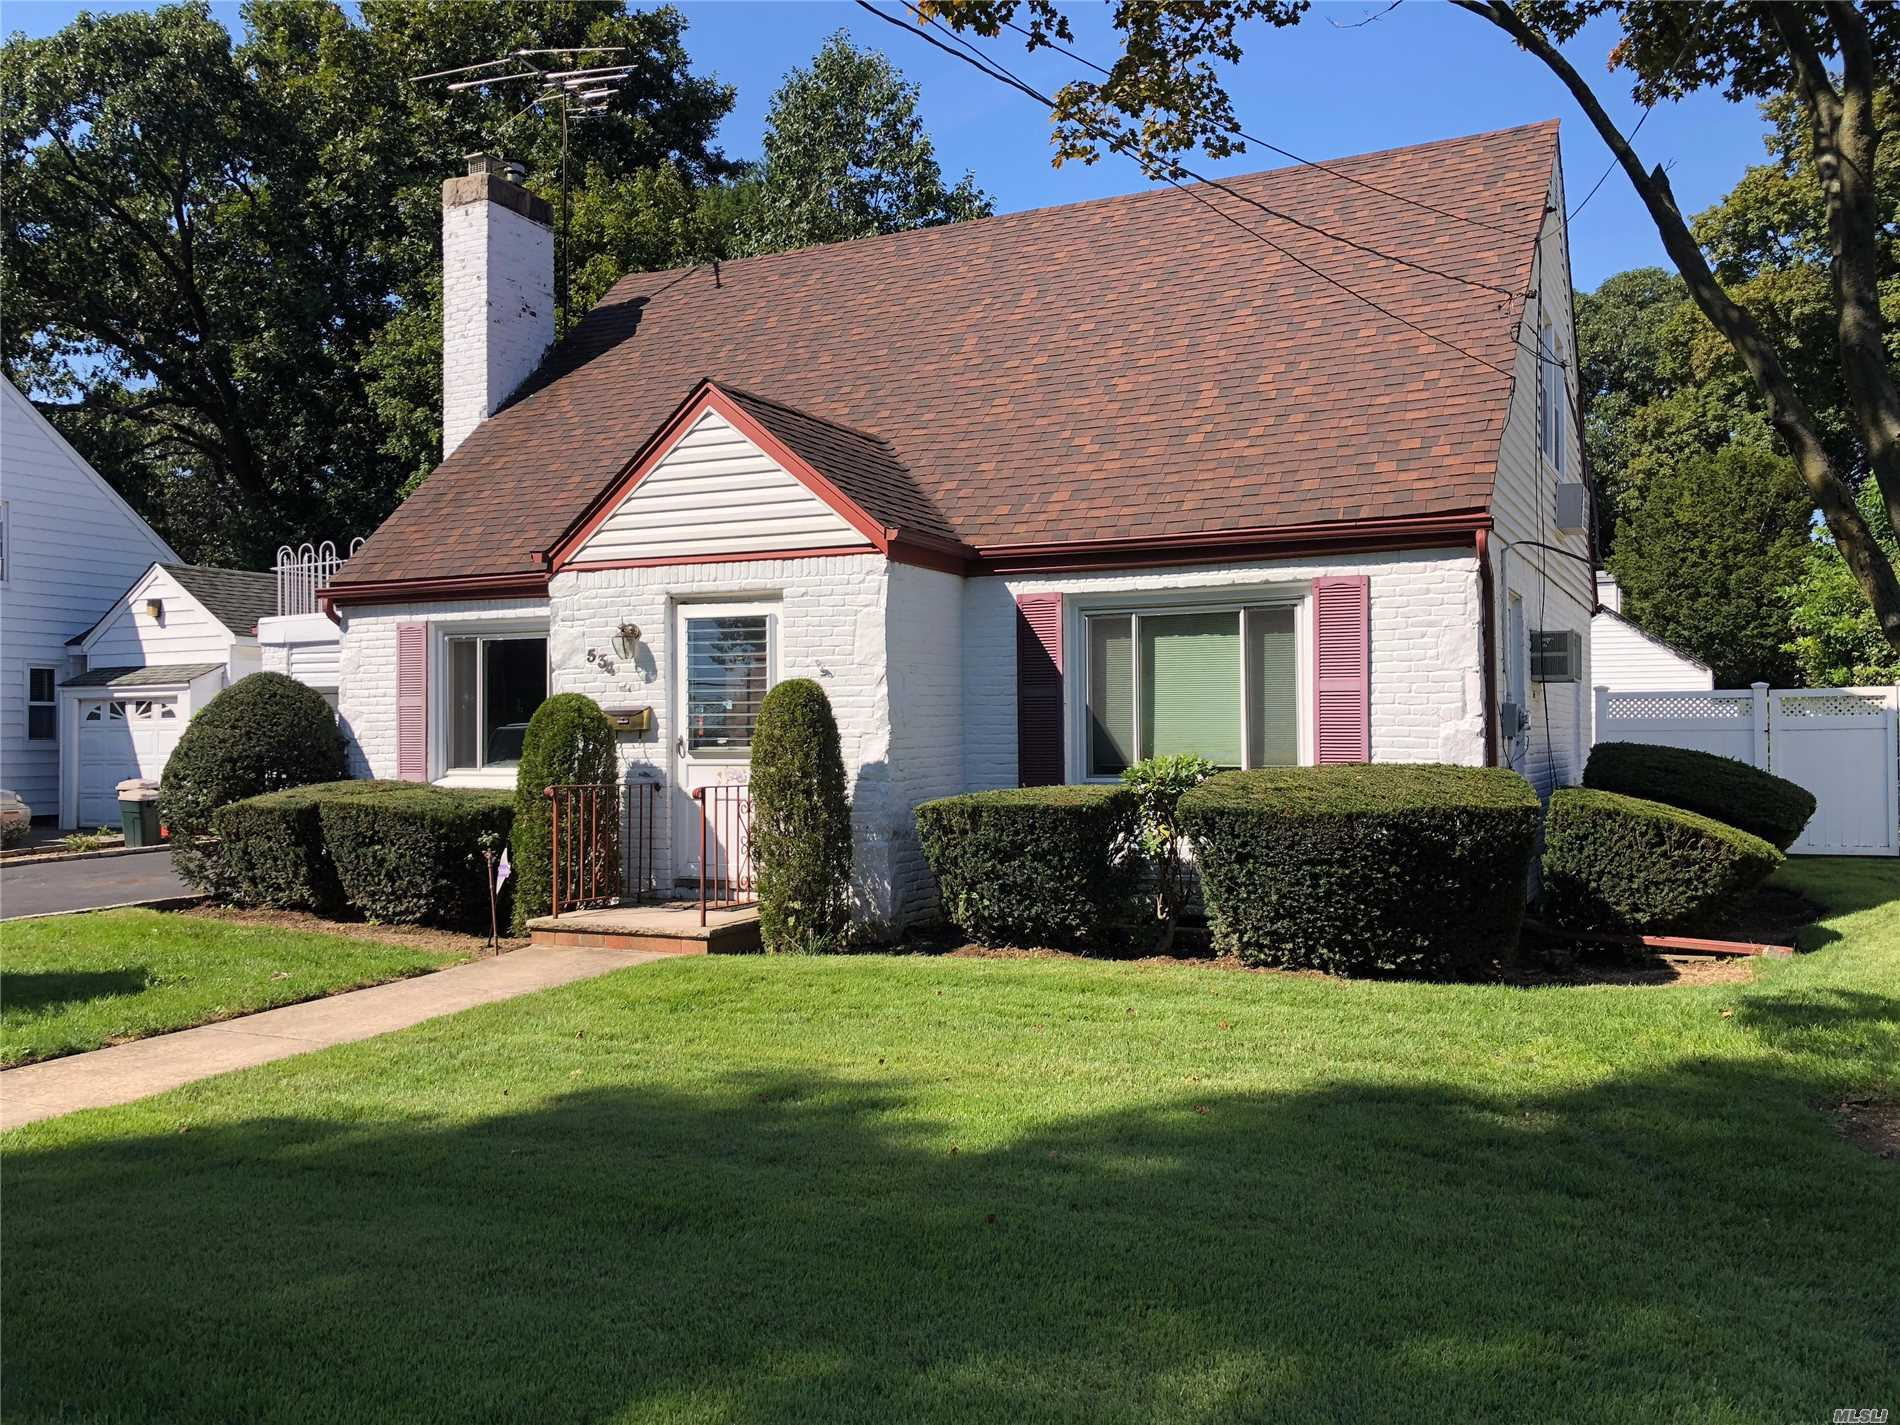 This 3 Bedroom 2 Bath Cape Needs Your Tlc . Set On A Beautiful Tree Lined Street In The Heart Of West Hempstead It Is Close To Shopping, Major Transportation, And Places Of Worship. Do Not Miss This Opportunity To Make This House A Home.